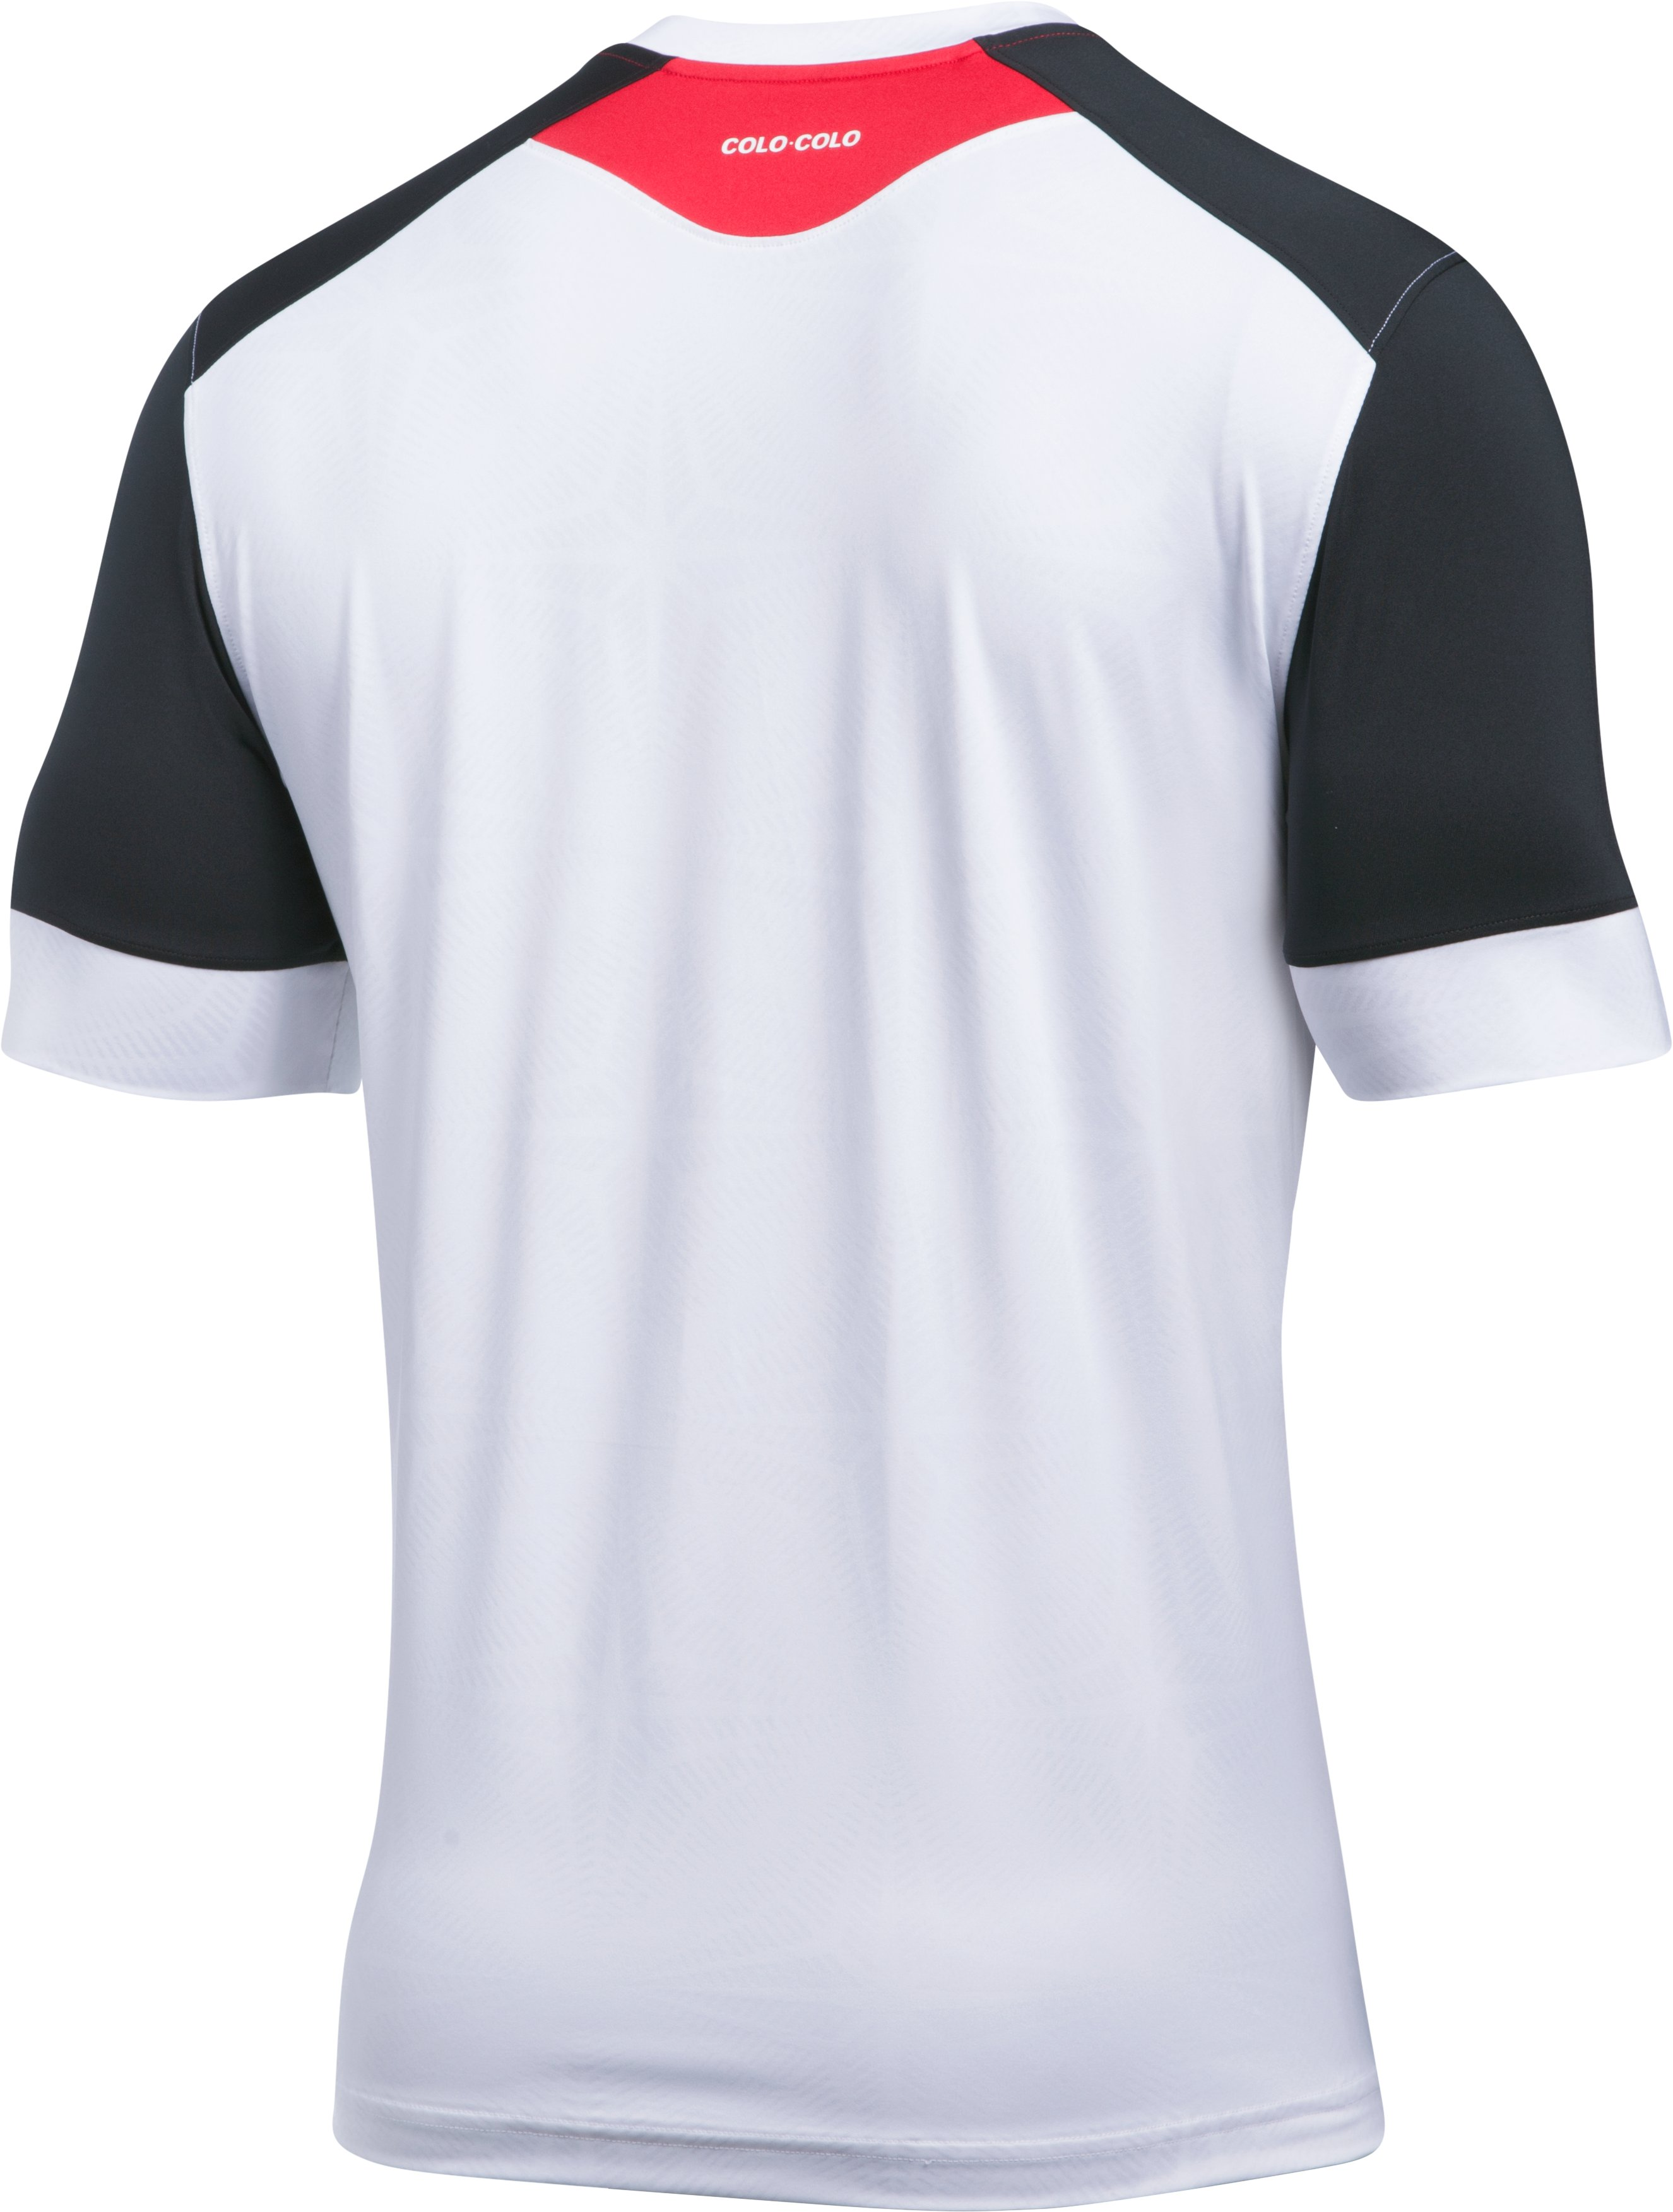 Men's Colo-Colo 16/17 Training Shirt, White, undefined